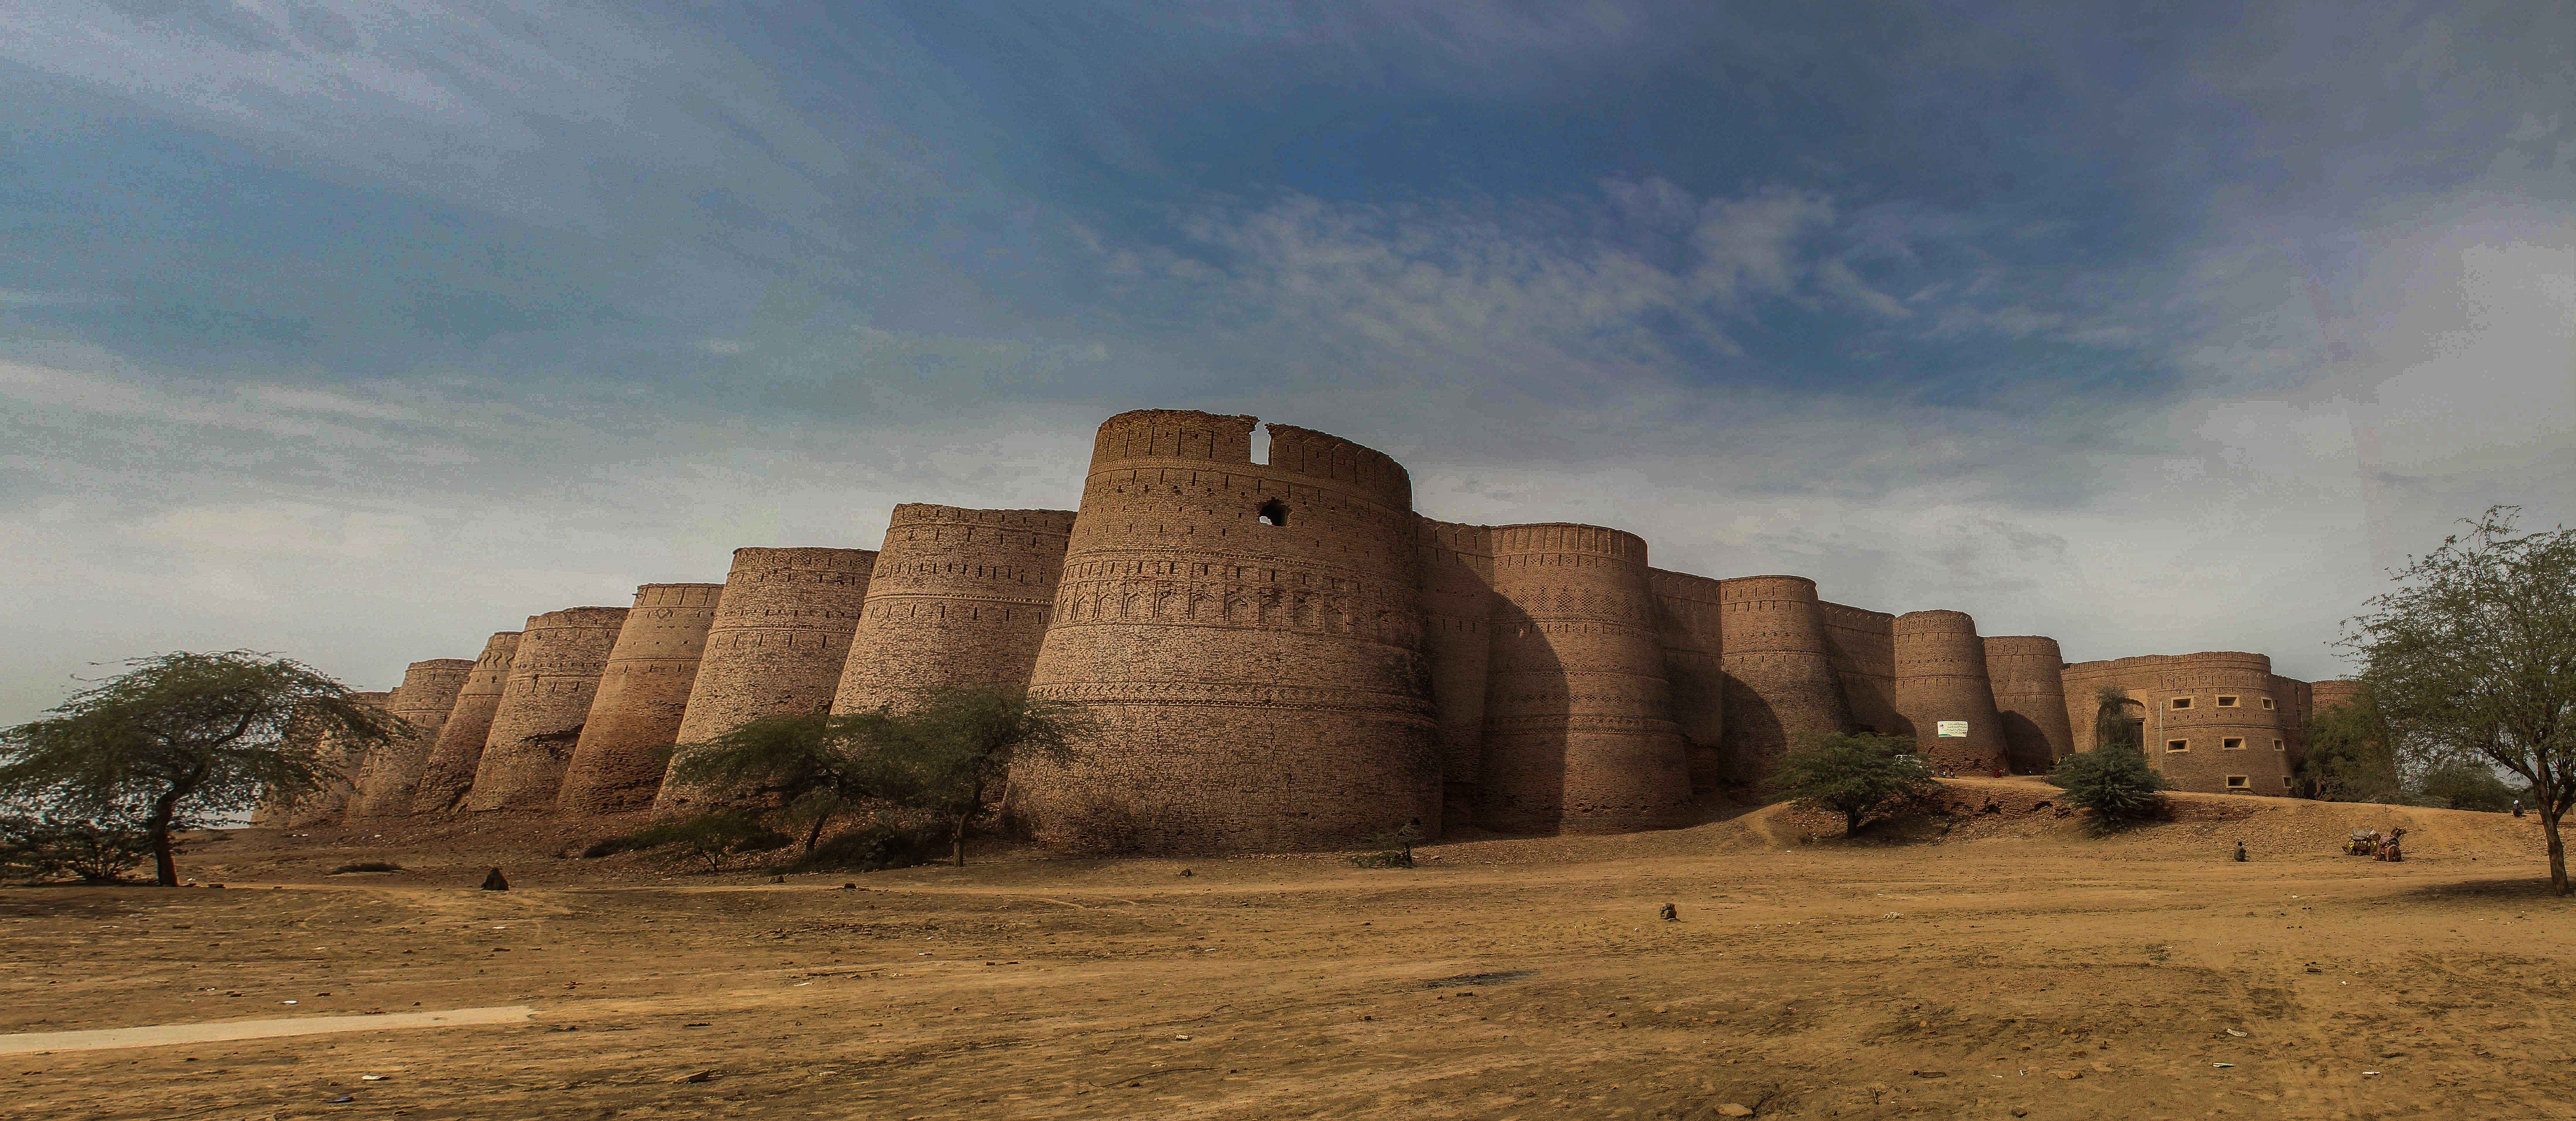 Derawar Fort 800 Years Old Ruins IN Cholistan Desert